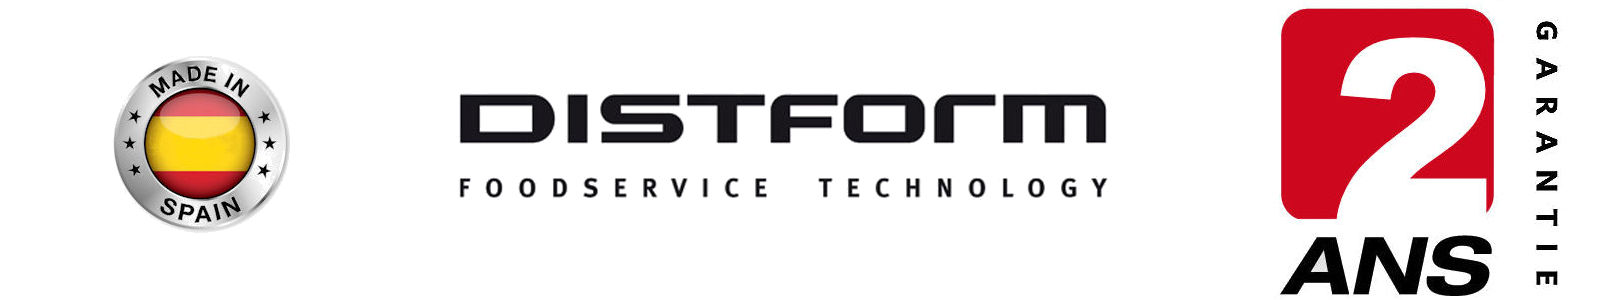 Logo Distform.jpg